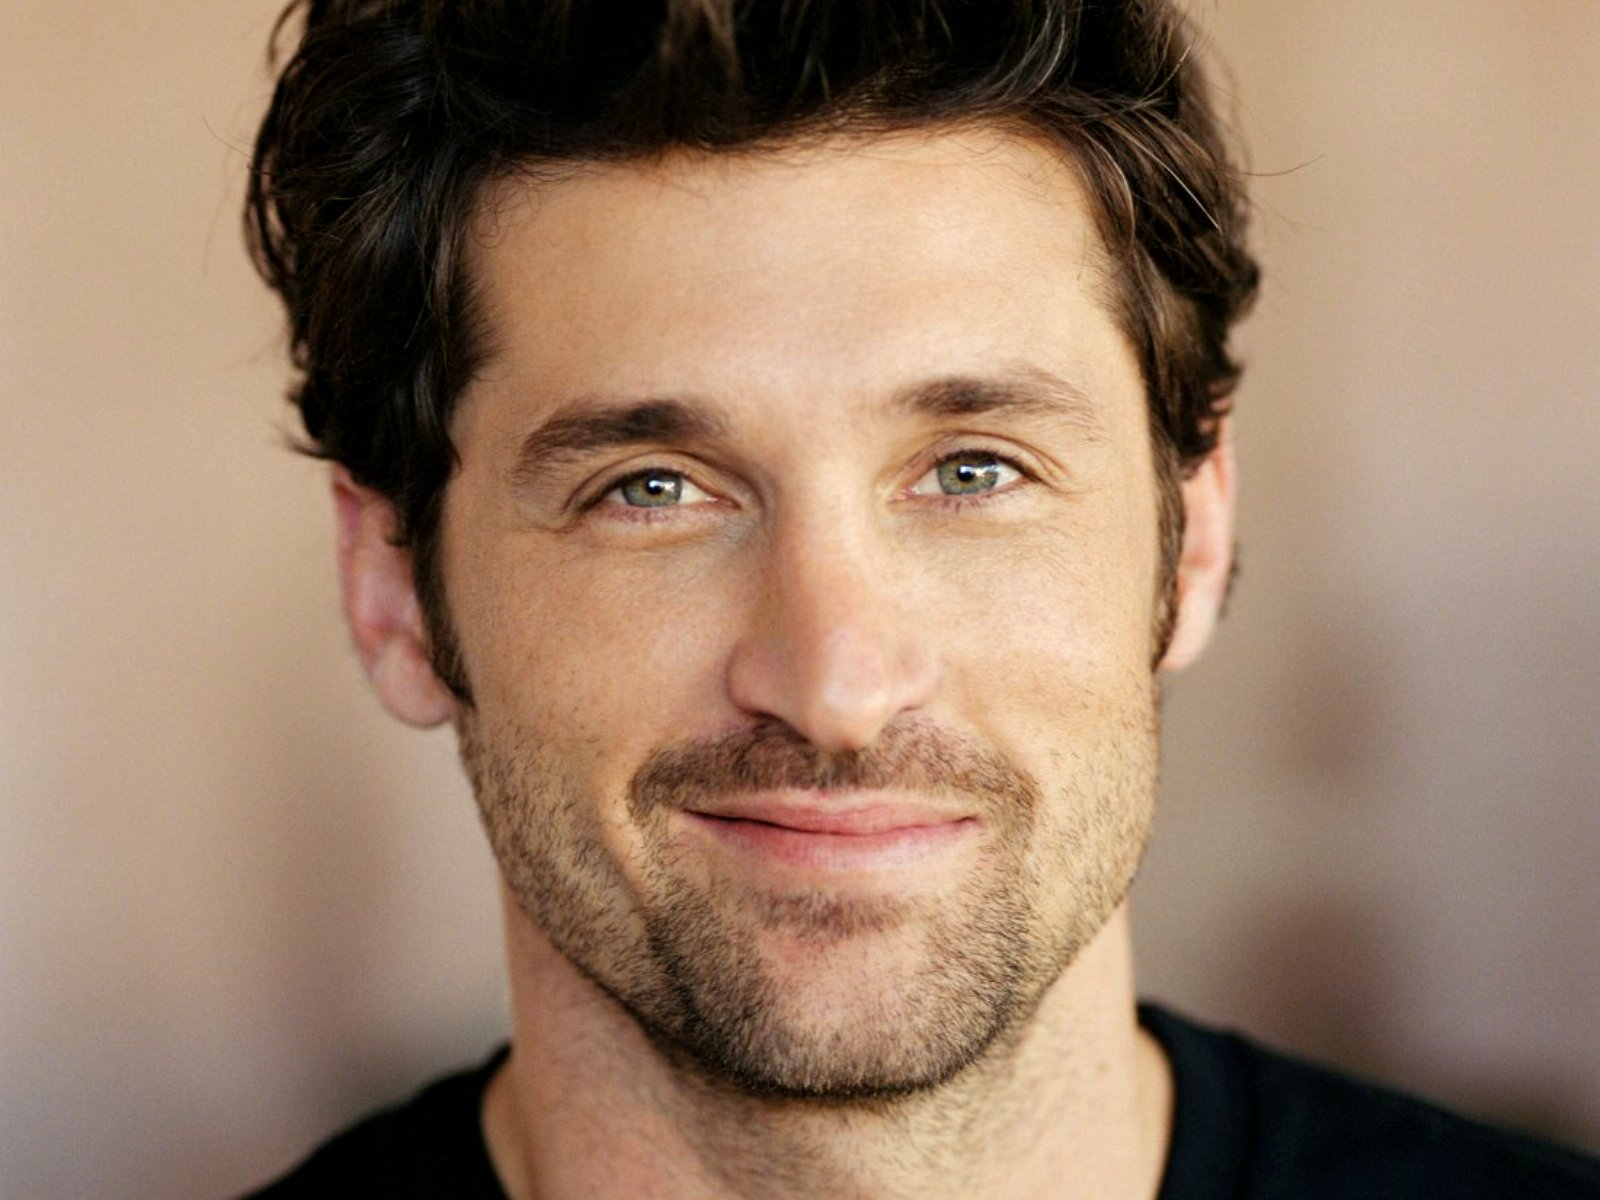 Was Patrick Dempsey Axed From Grey's Anatomy for Having an Affair? | 95.1 WAYV